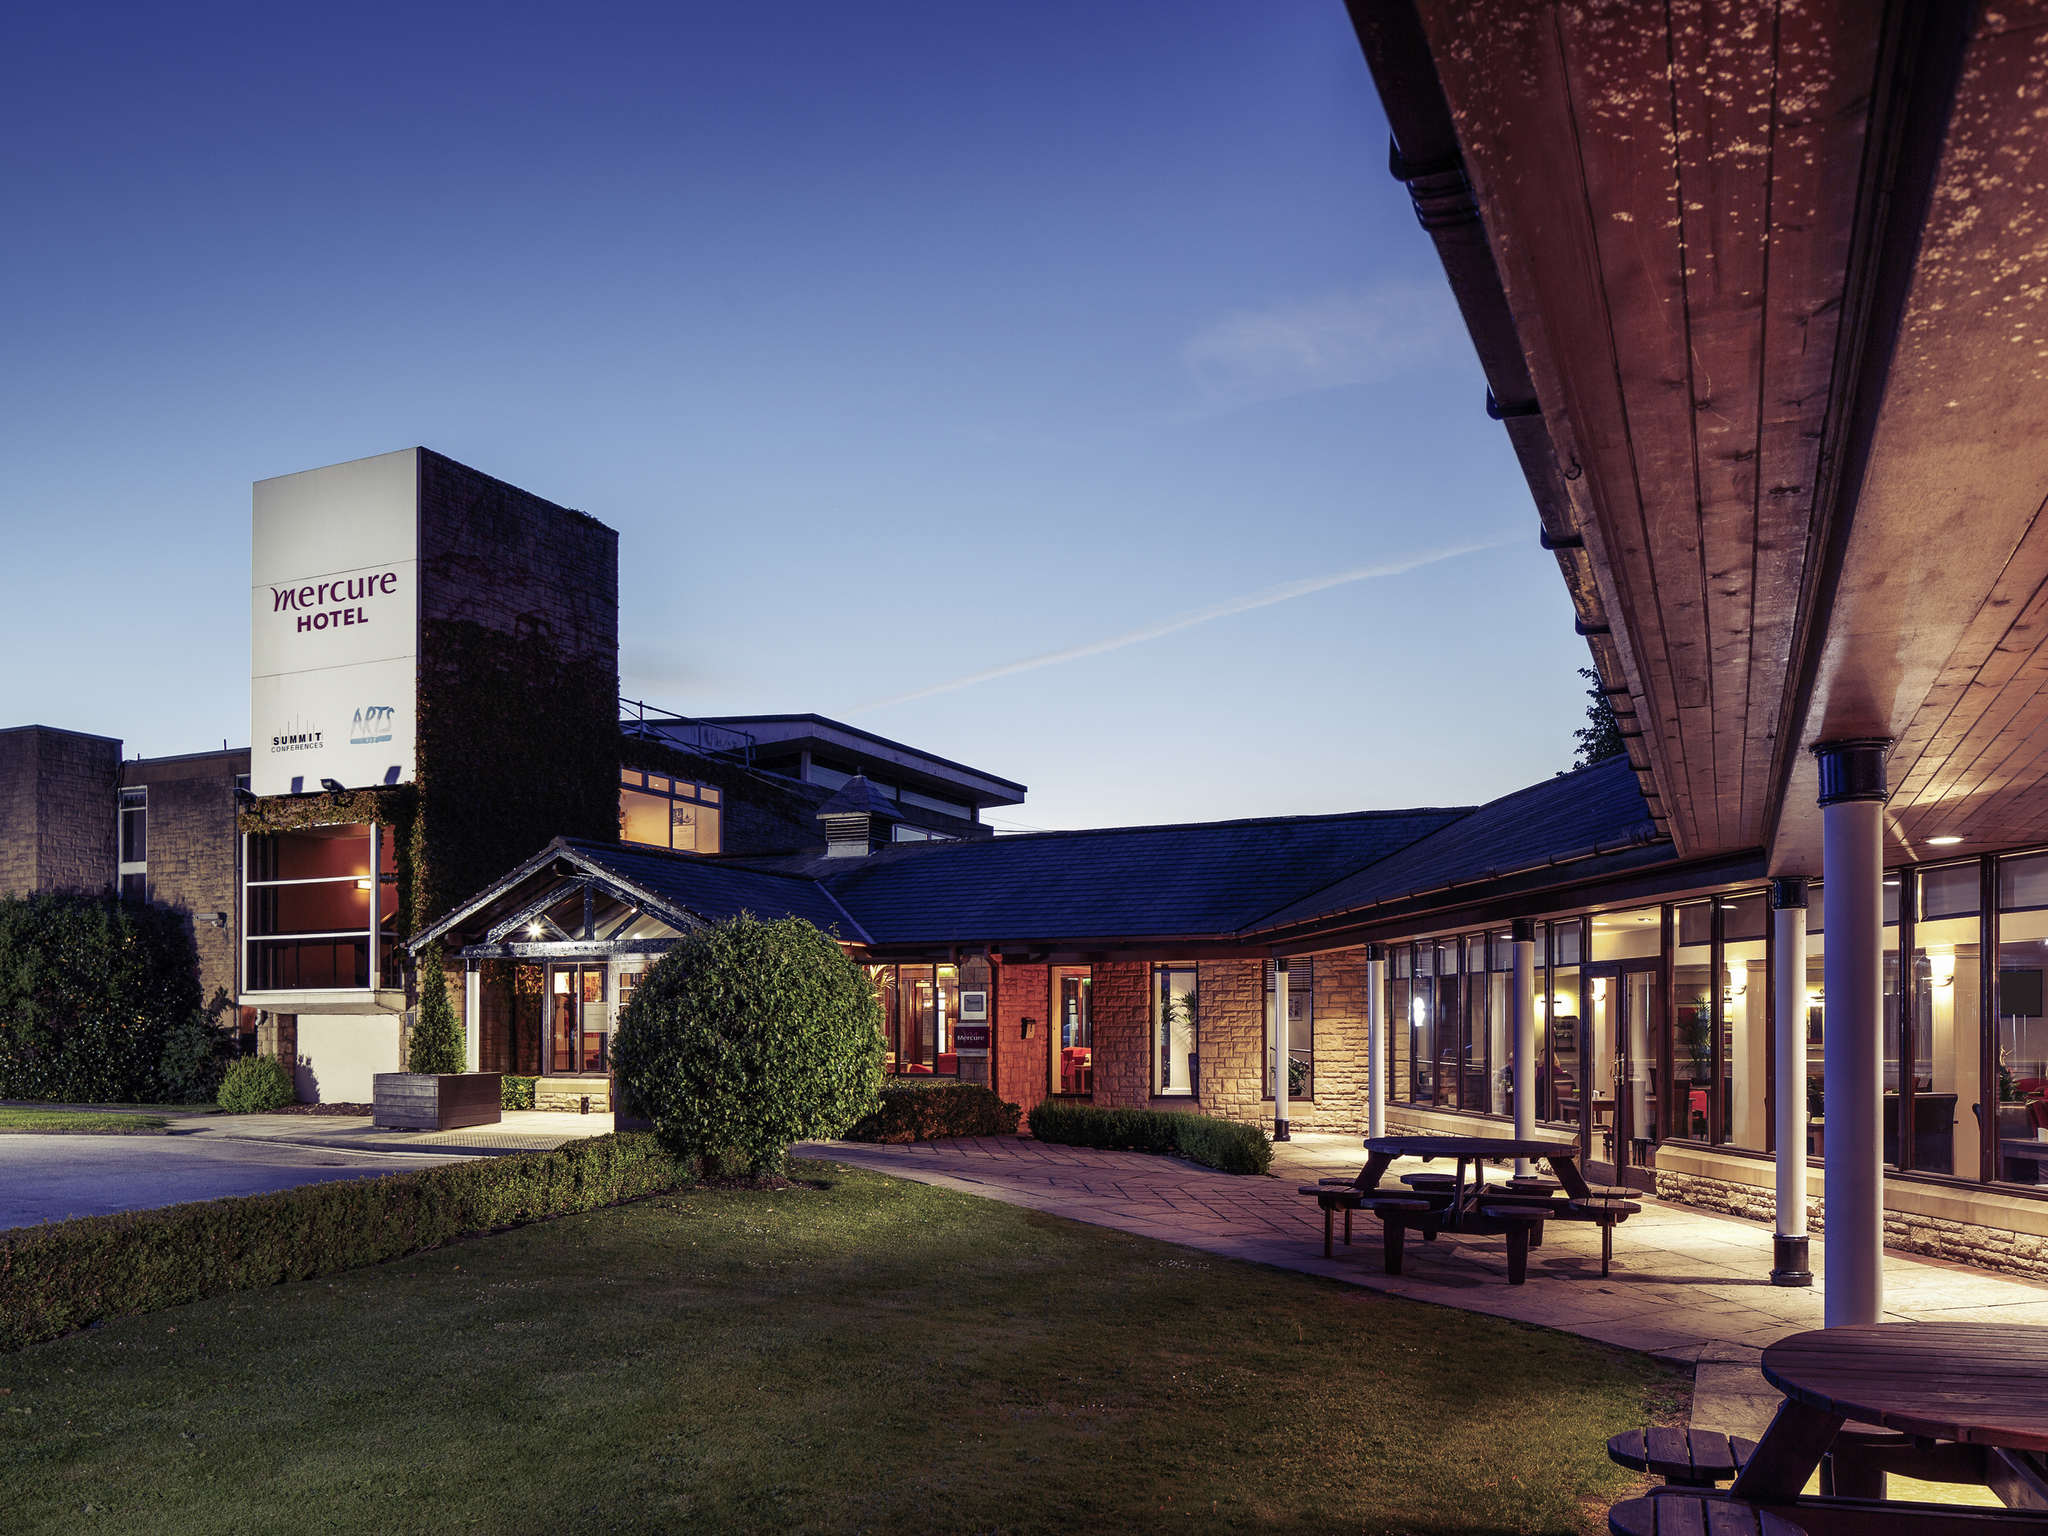 Hotell – Mercure Wetherby Hotel